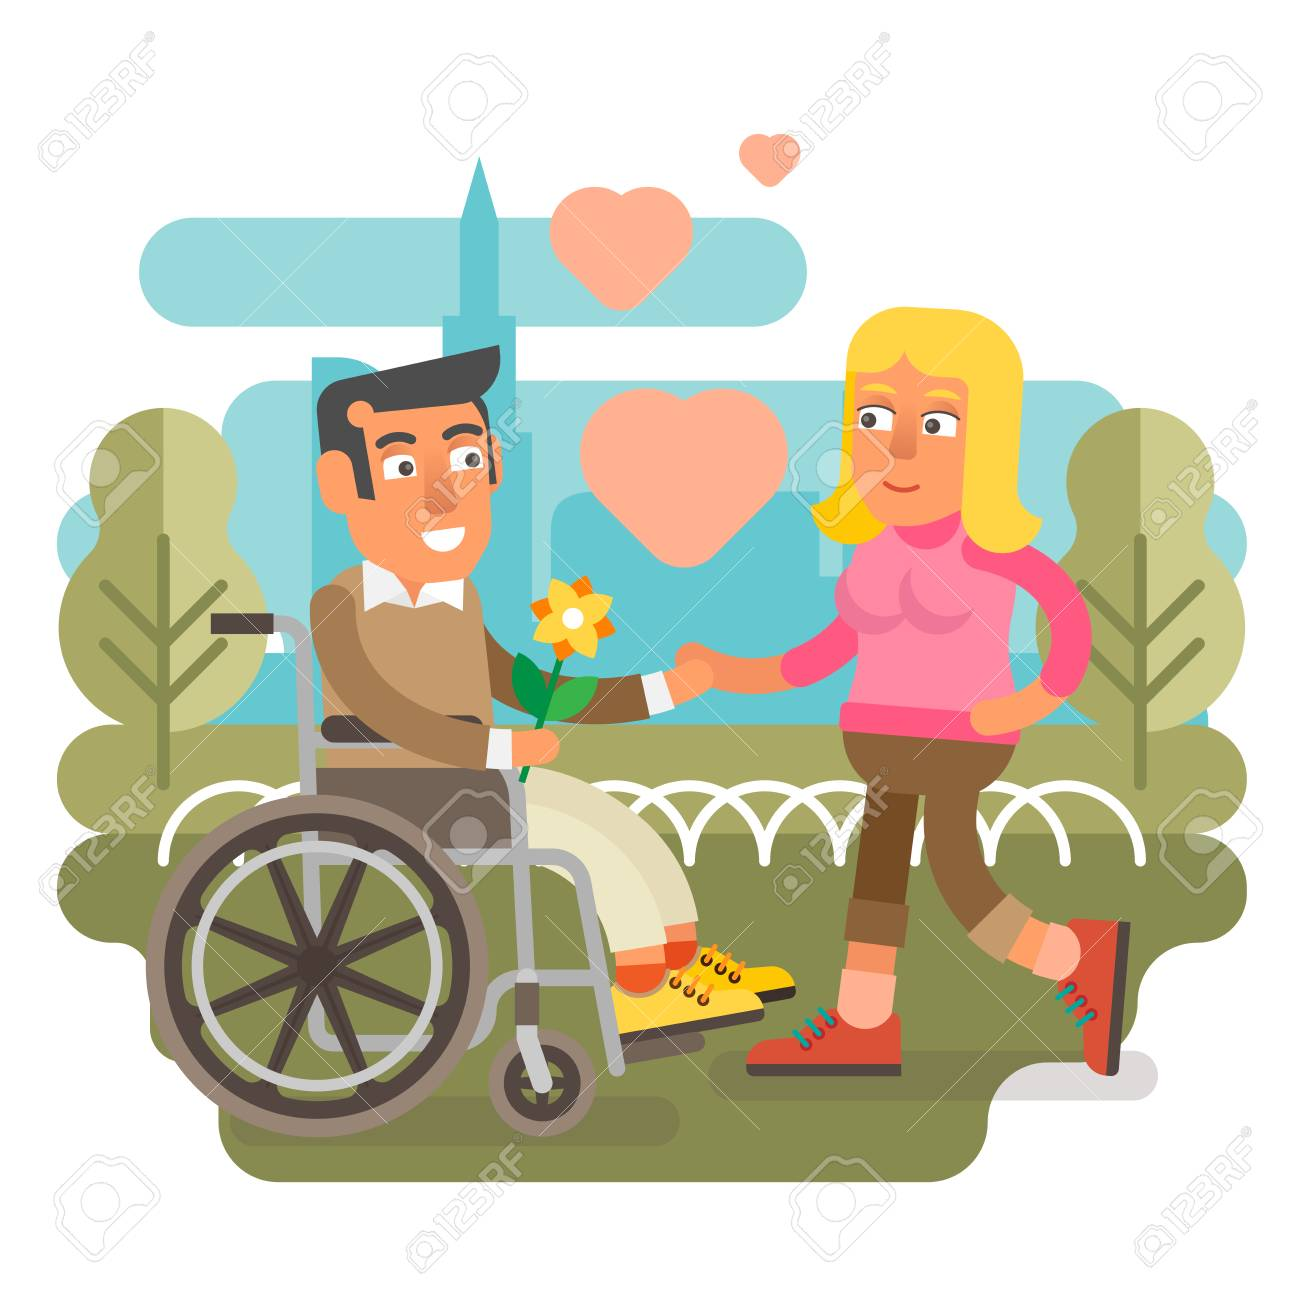 Differently disabled male on wheelchair dating woman. - 87917192